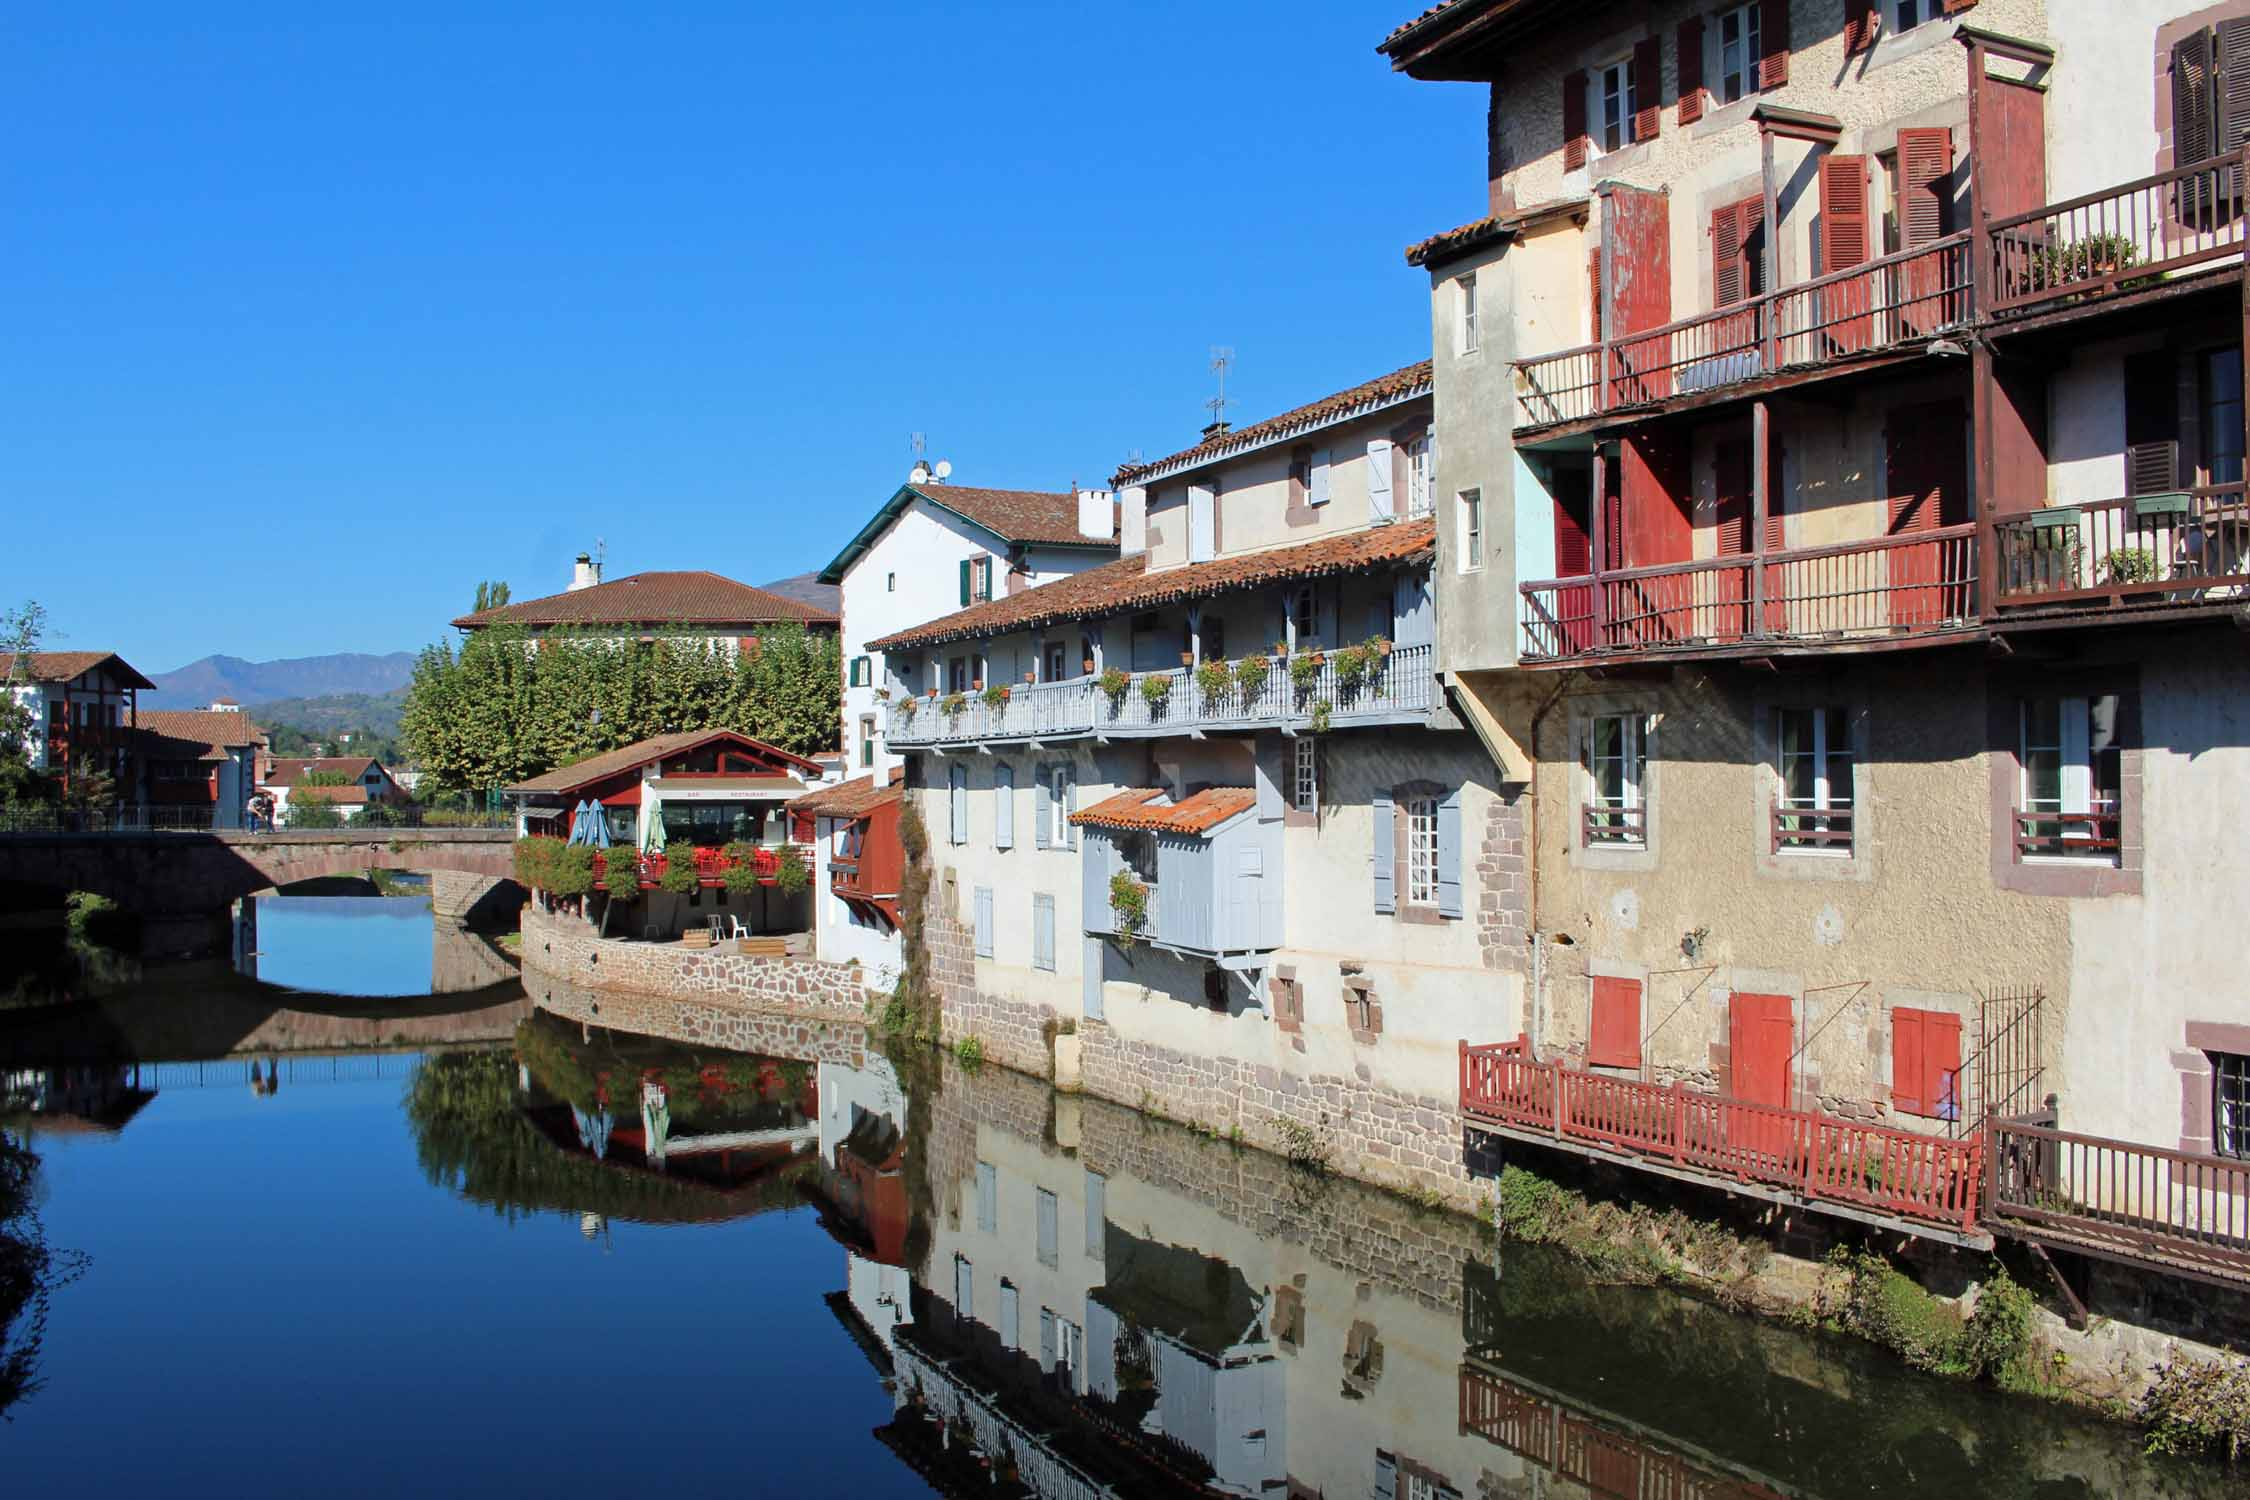 Saint-Jean-Pied-de-Port, Nive river, basque houses